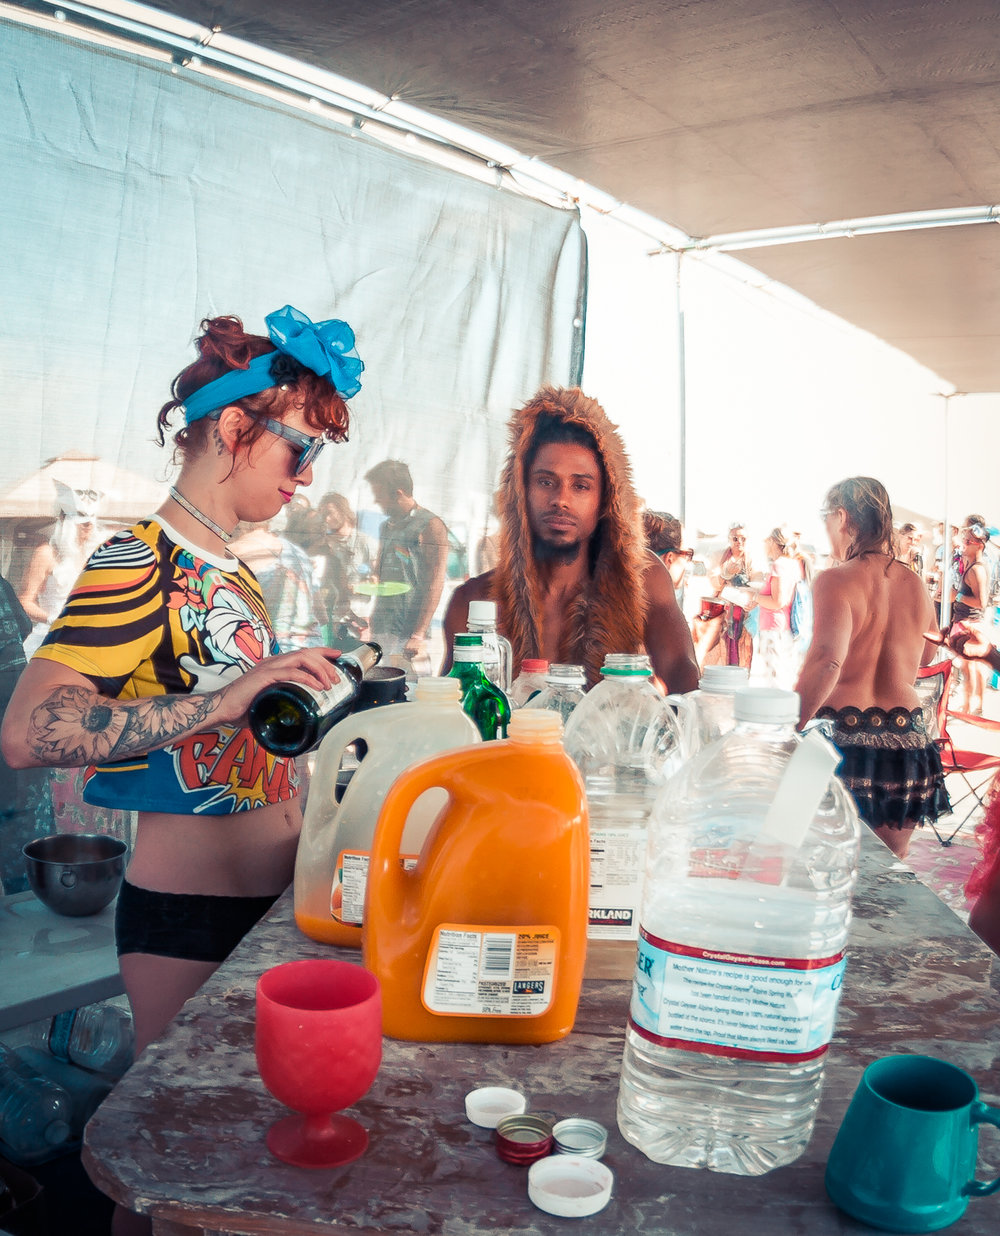 20160830-Burning man-214.jpg